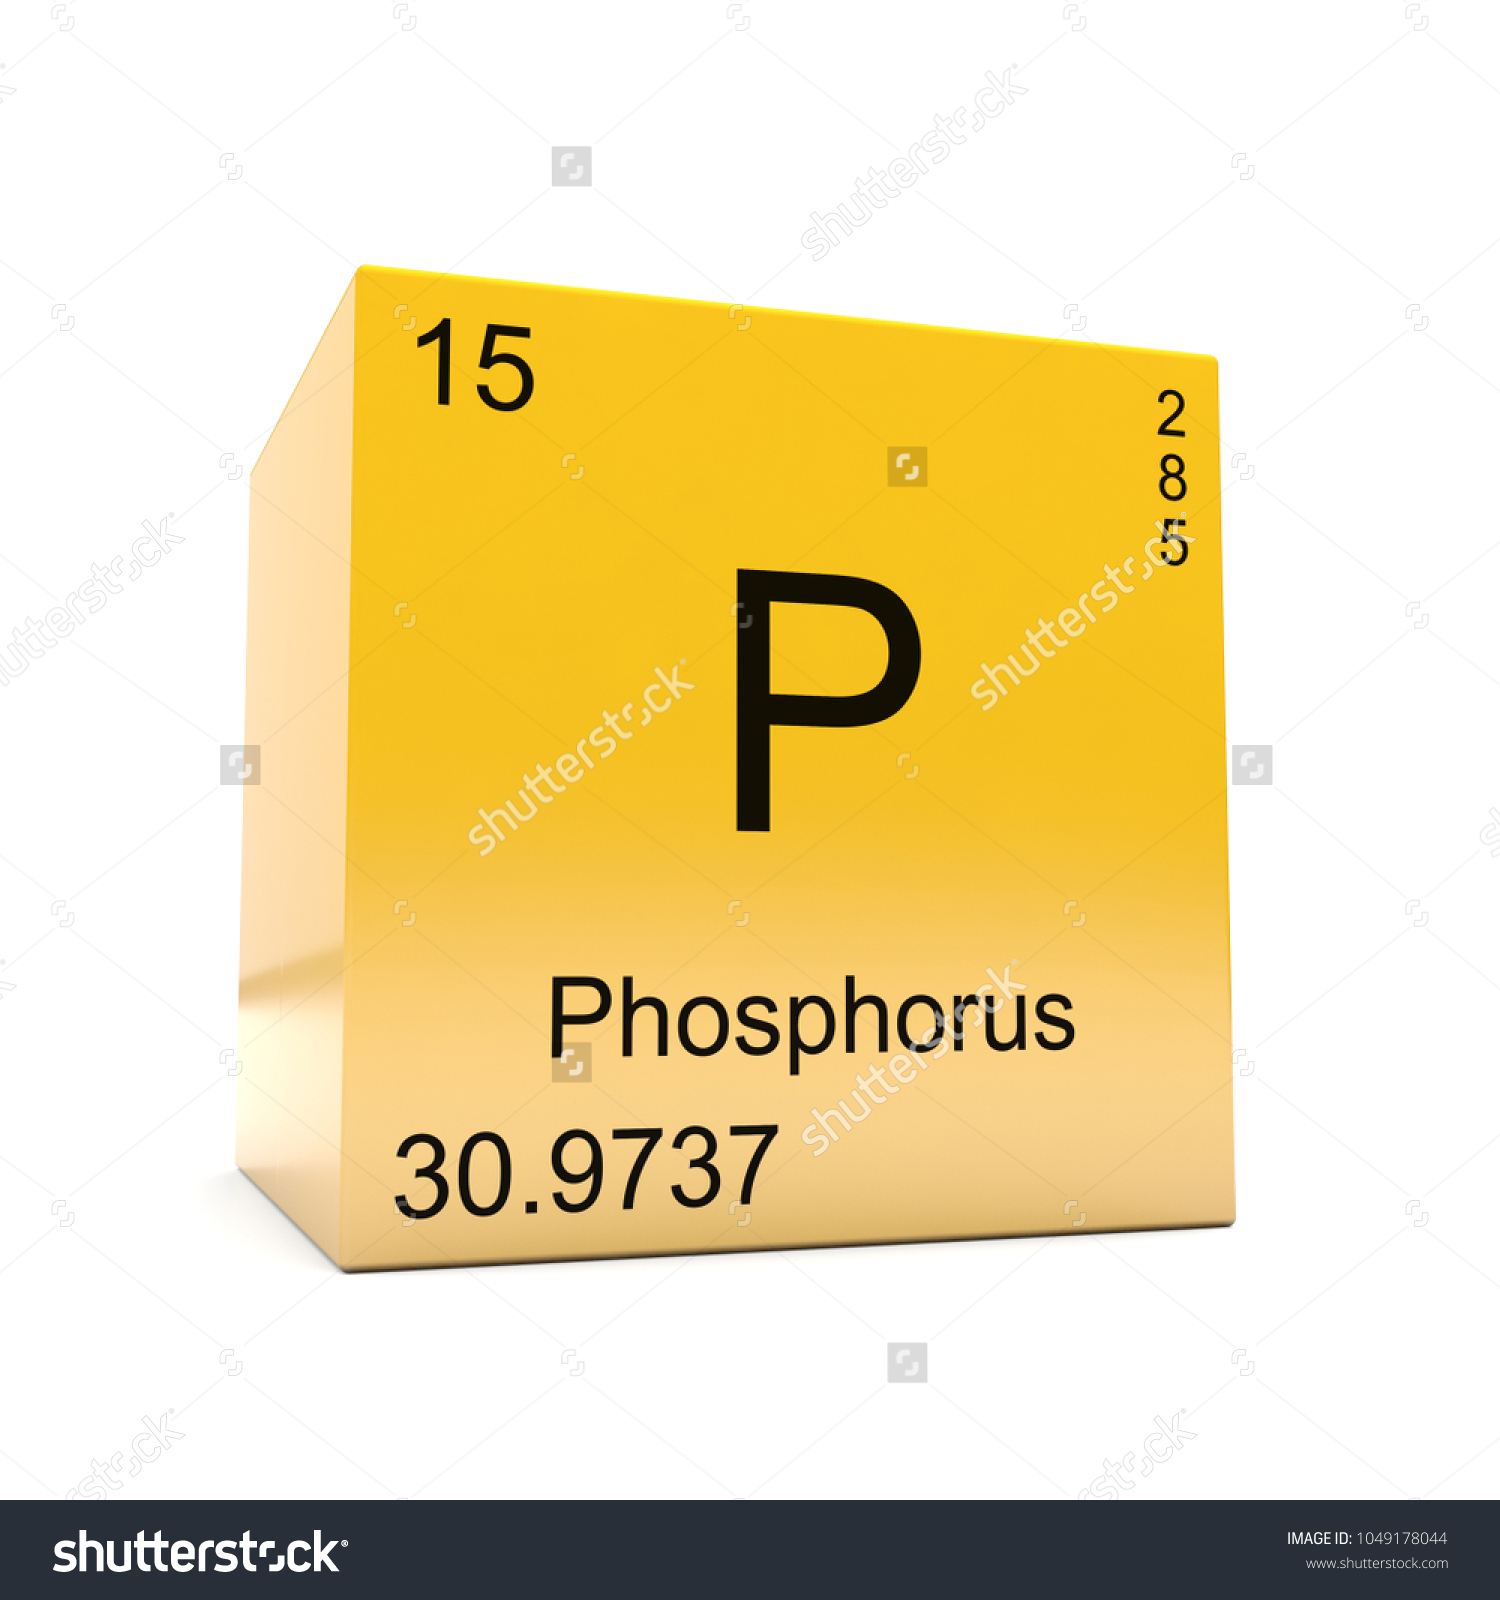 Periodic table gold abbreviation gallery periodic table and mercury symbol periodic table gallery symbol and sign ideas symbol for gold on periodic table image urtaz Image collections